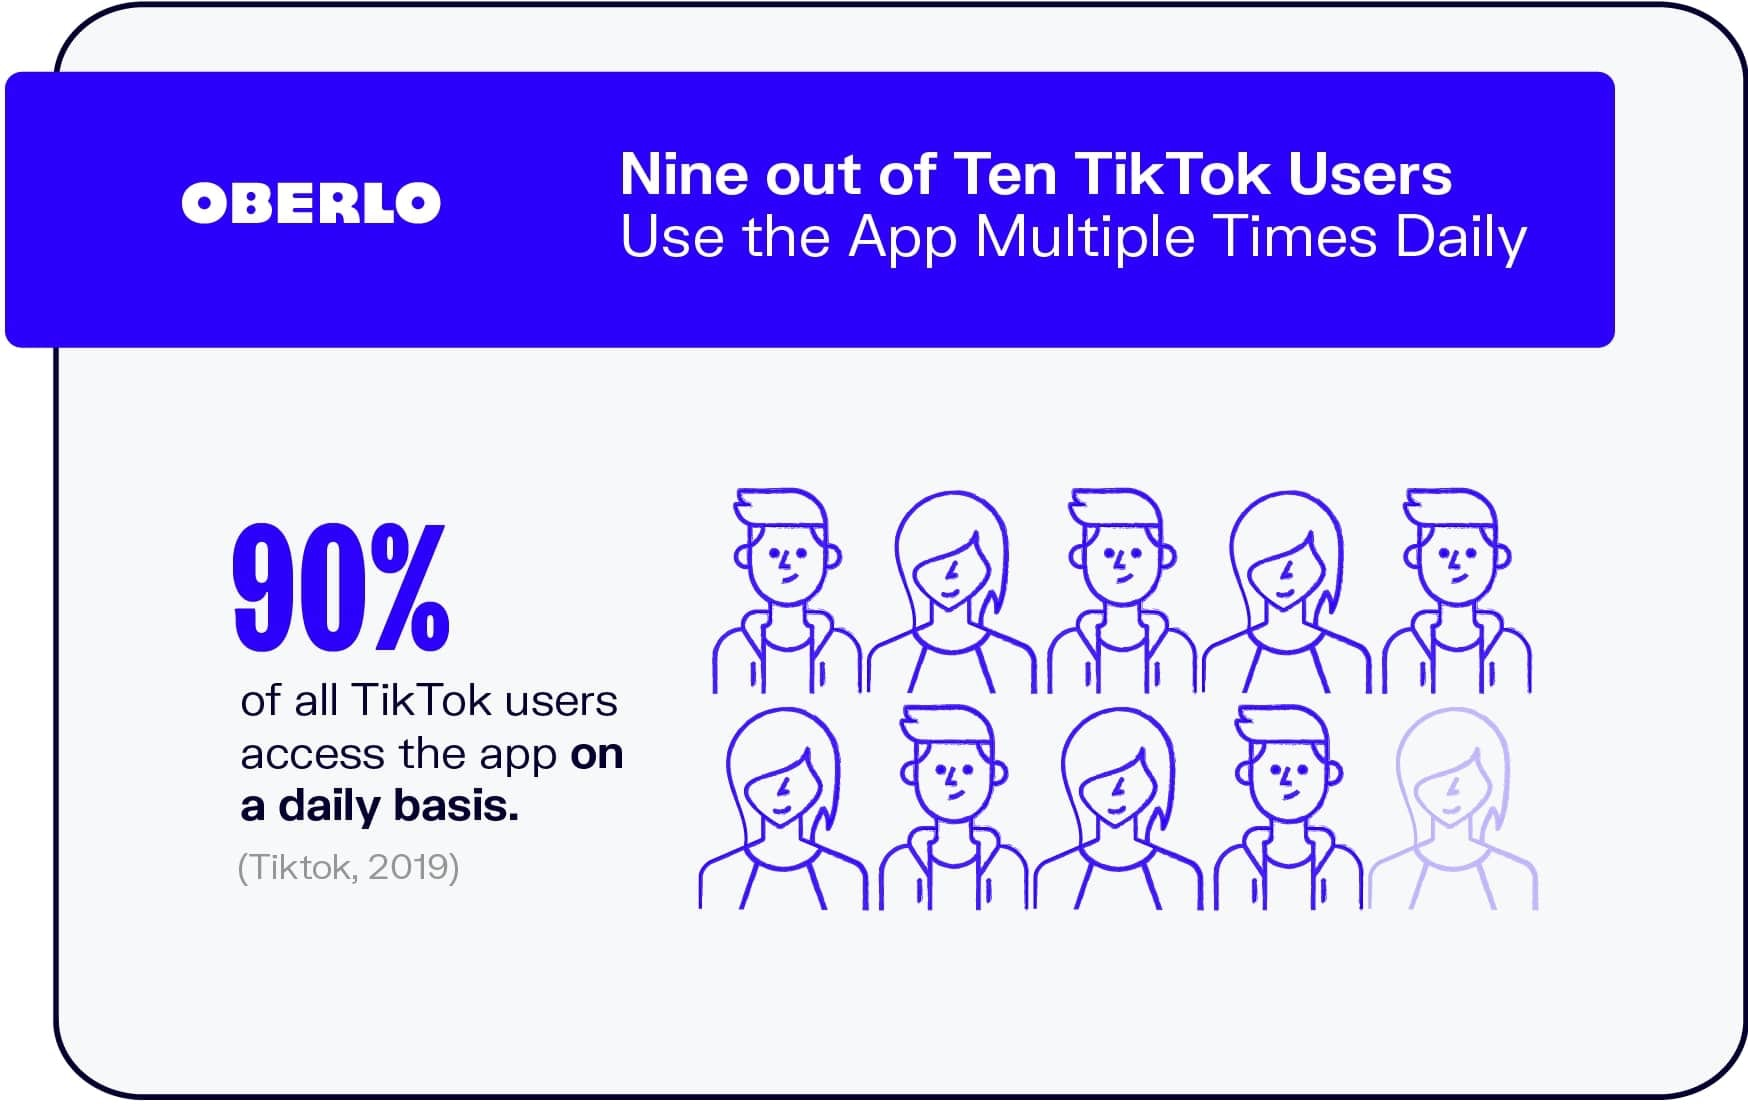 Nine Out of Ten TikTok Users Use the App Multiple Times Daily